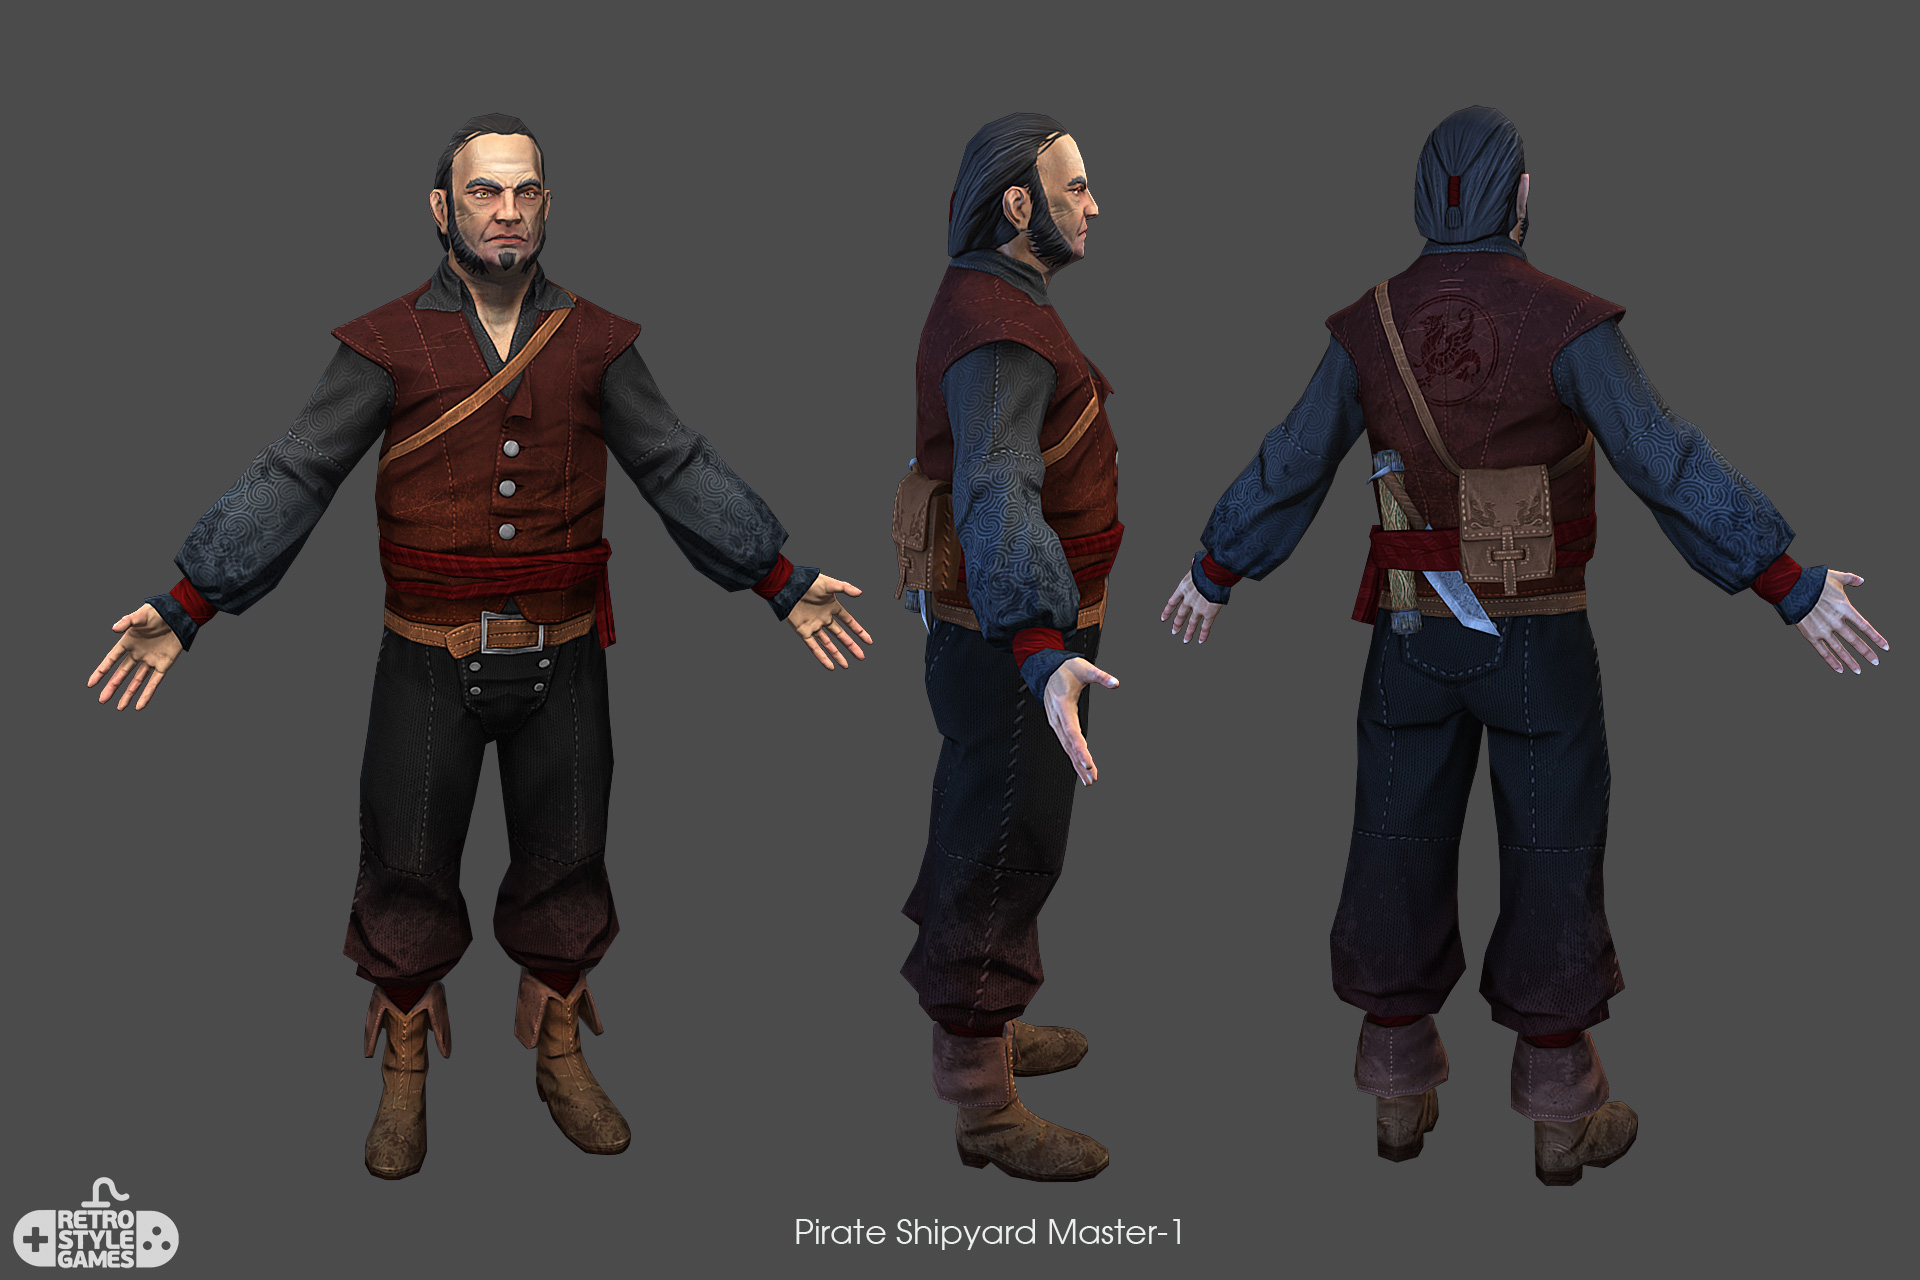 Low Poly Characters Real Time Pirate Shipyard Master 1